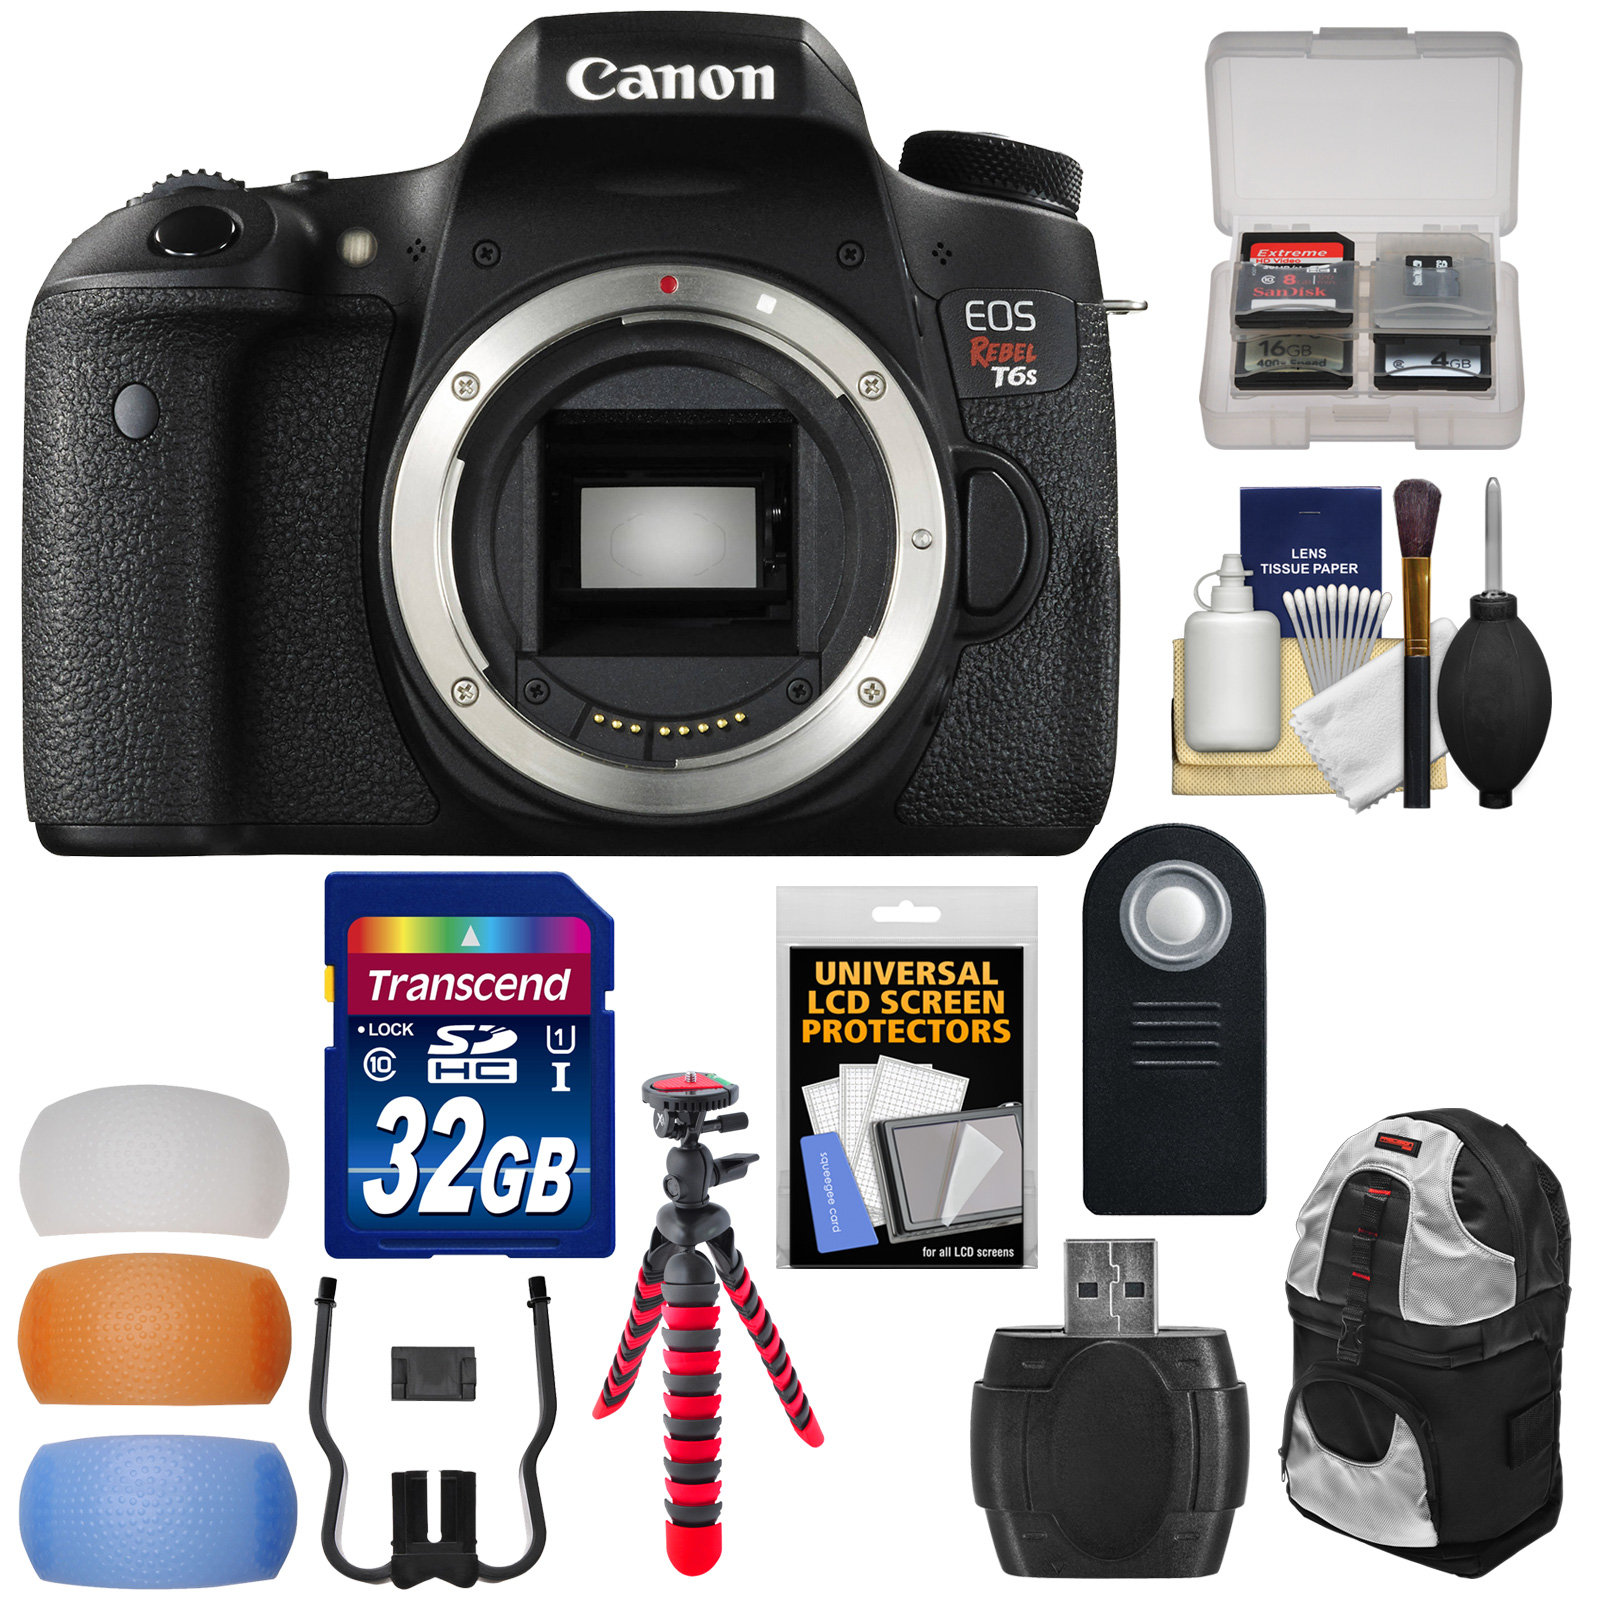 Canon EOS Rebel T6s Wi-Fi Digital SLR Camera Body with 32...